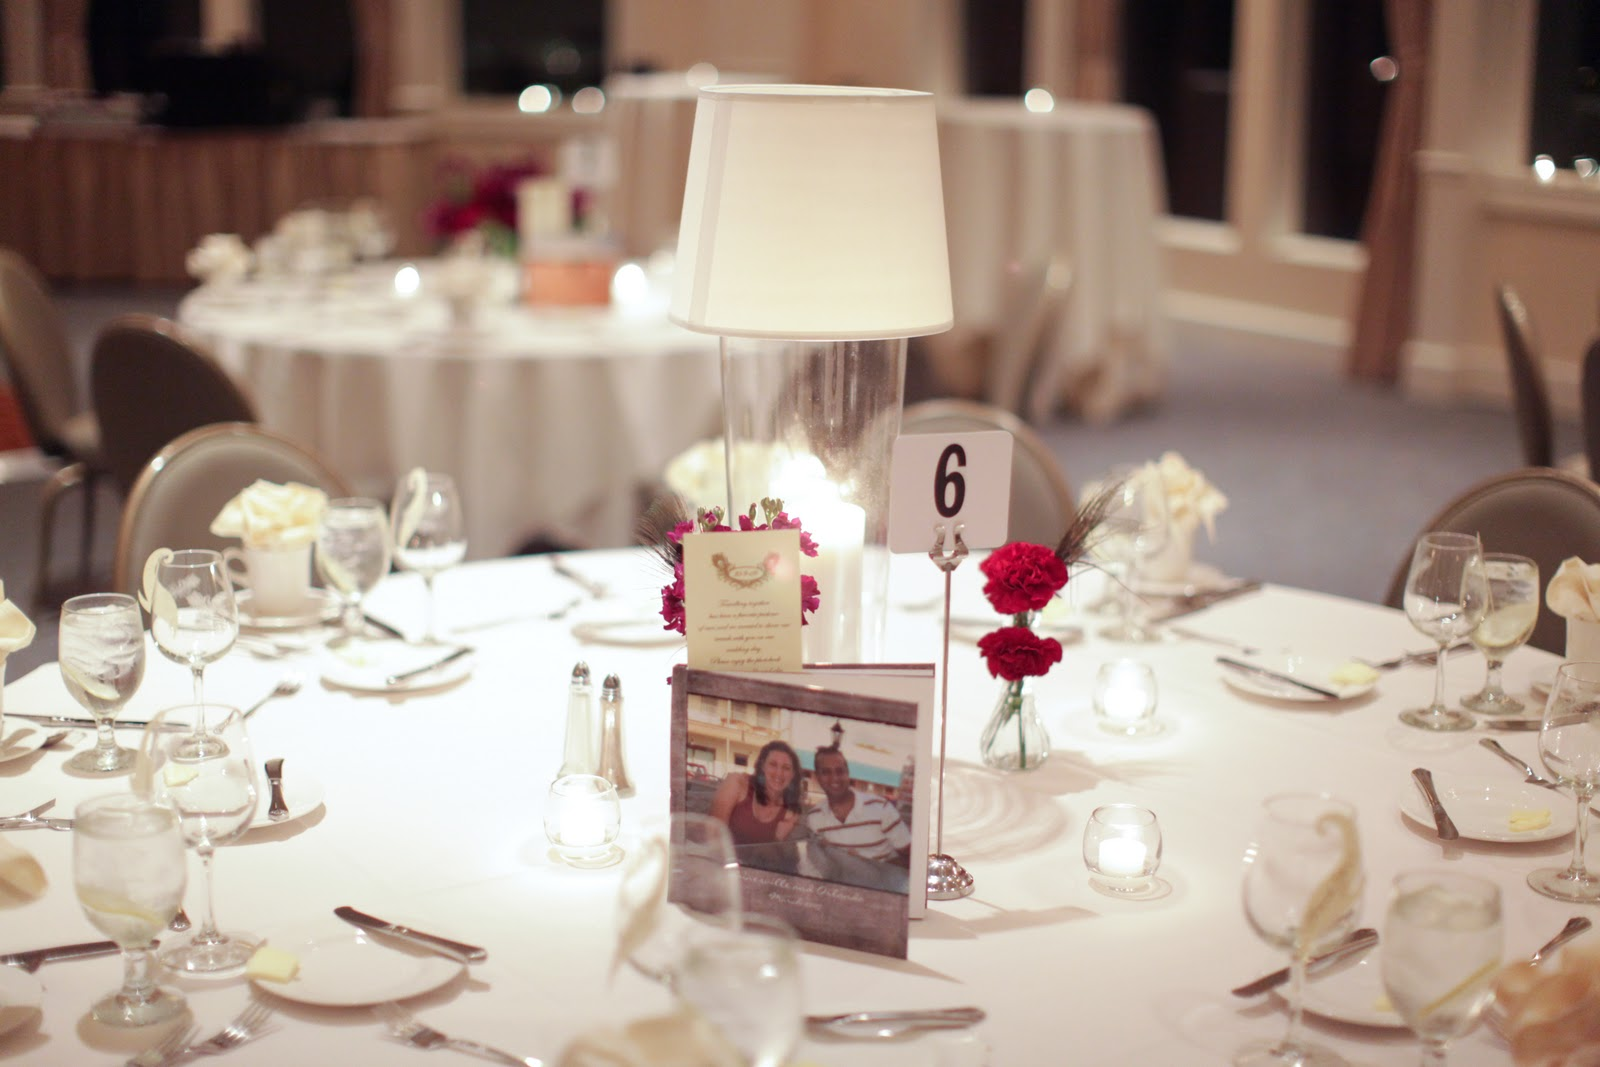 Nae Chic Wedding DIY Table Decor